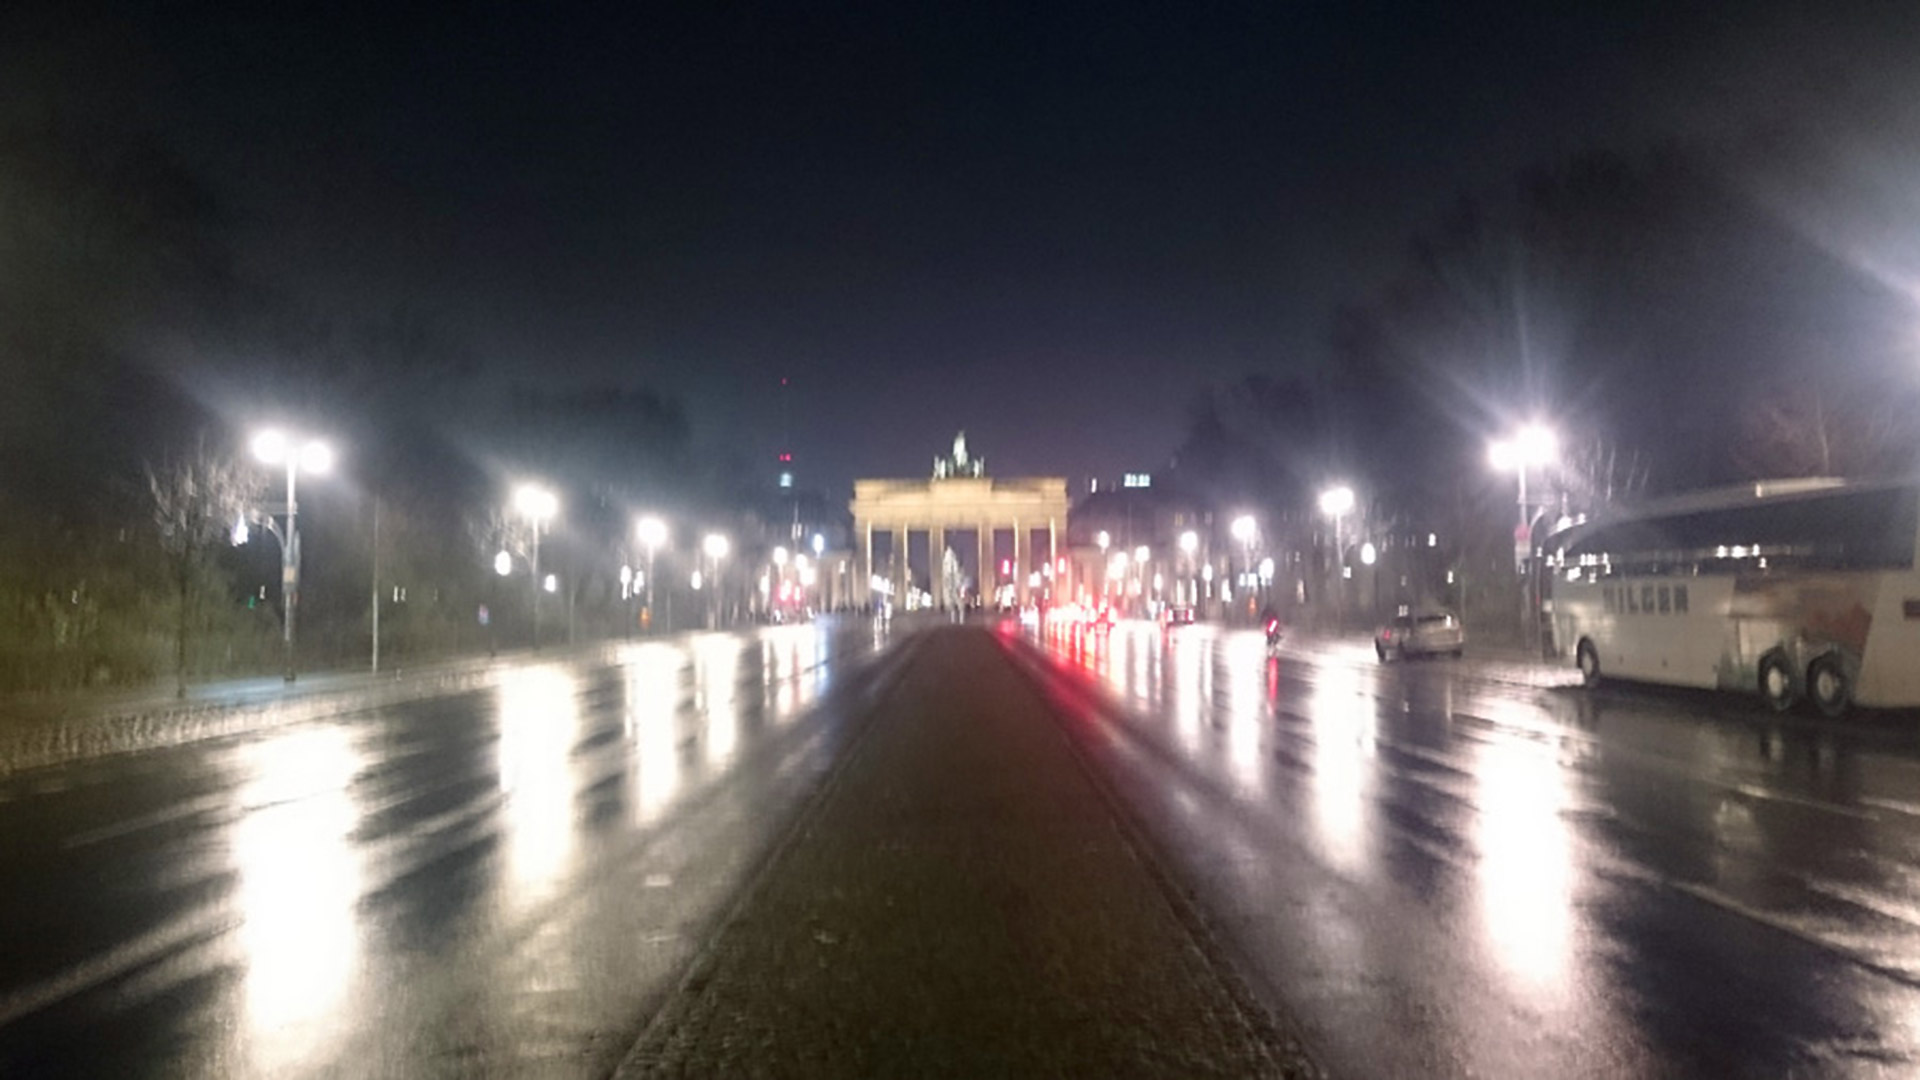 Berlin street at night. Photo: Susan Hortmann